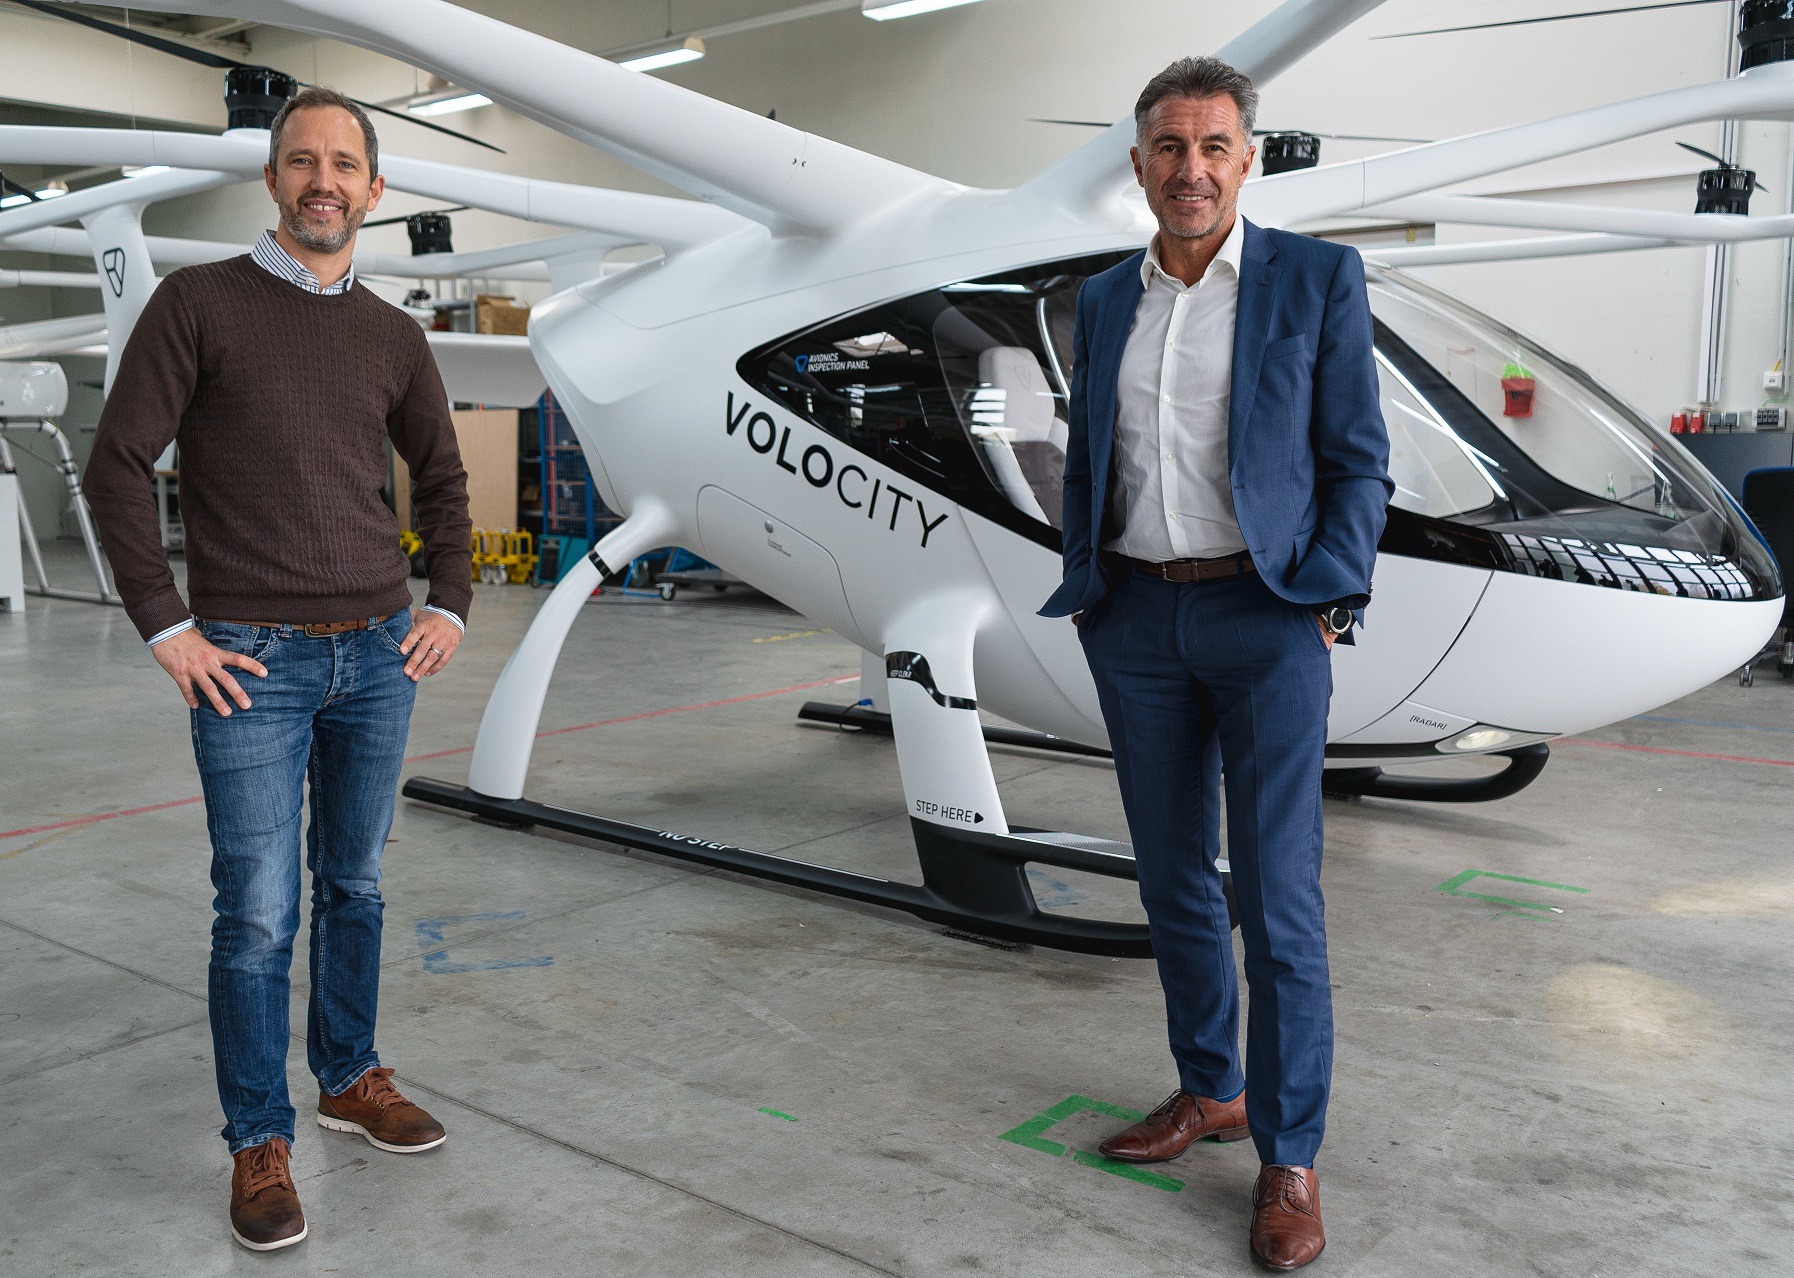 Volocopter and Lufthansa Industry Solutions VoloIQ